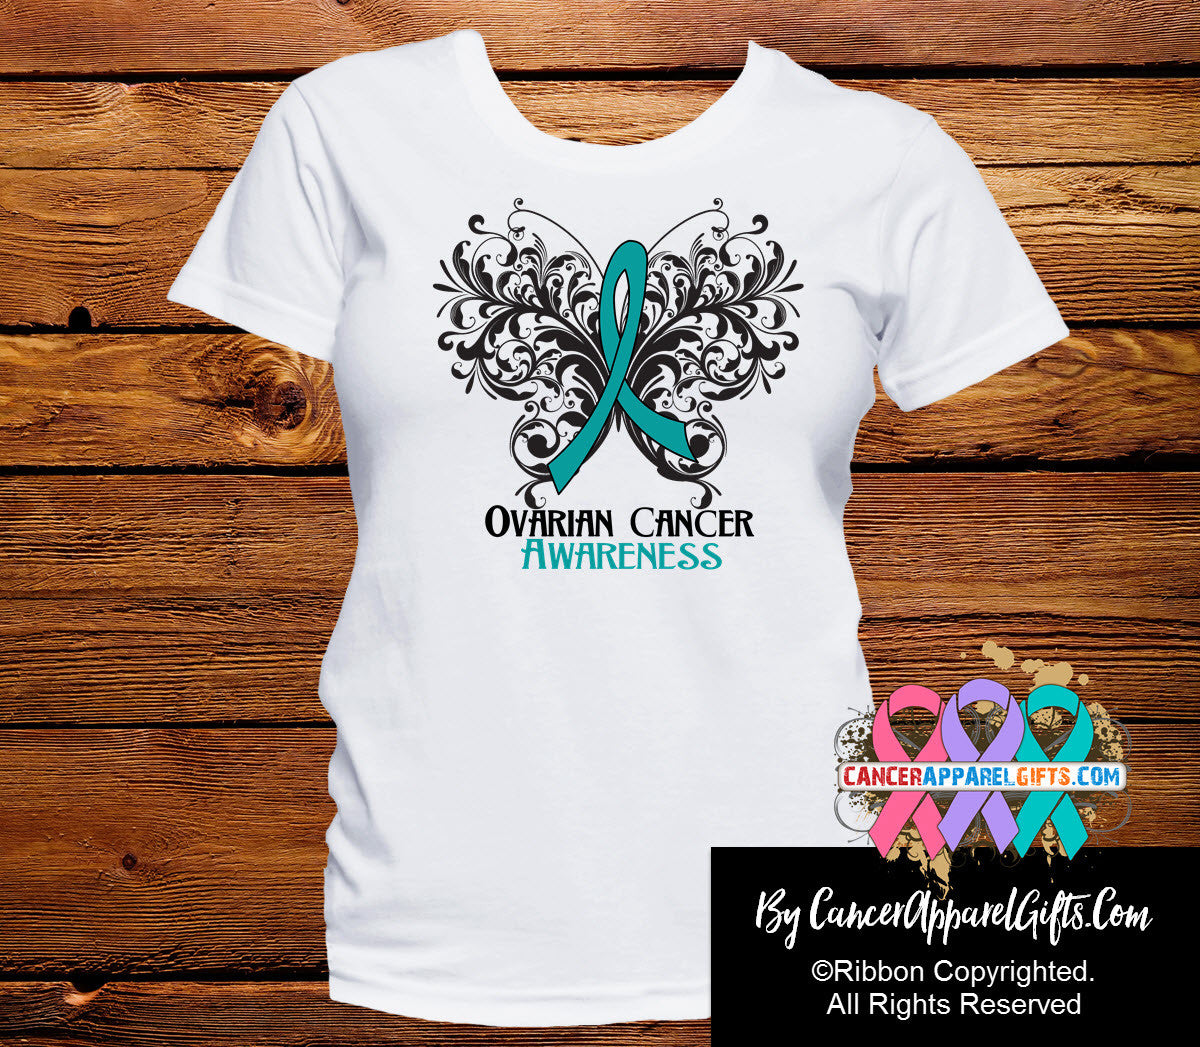 Ovarian Cancer Butterfly Ribbon Shirts - Cancer Apparel and Gifts